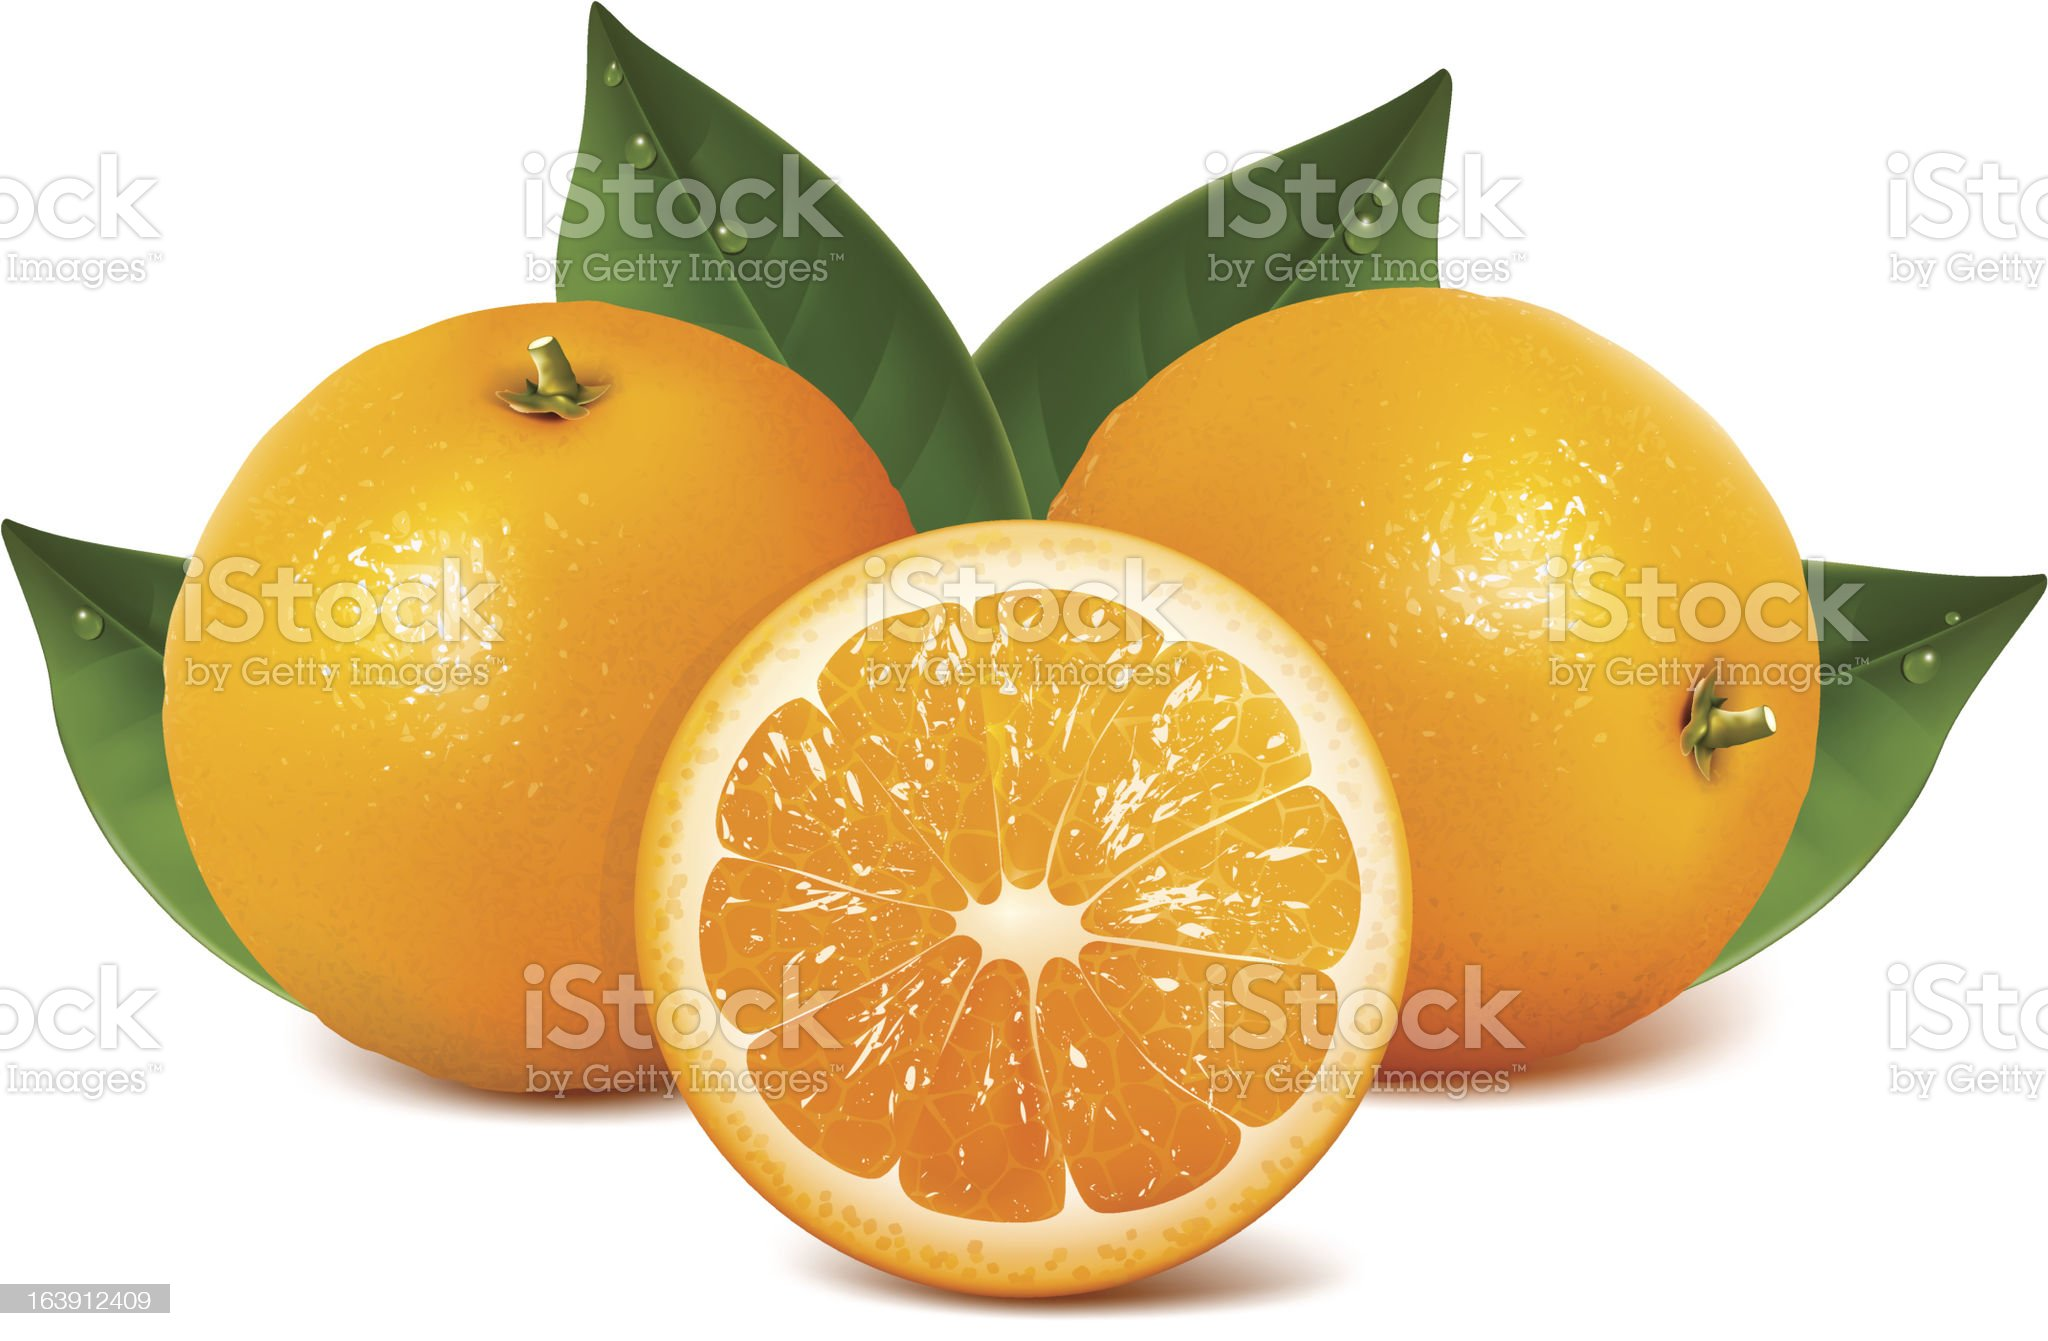 Fresh ripe oranges with leaves. royalty-free stock vector art